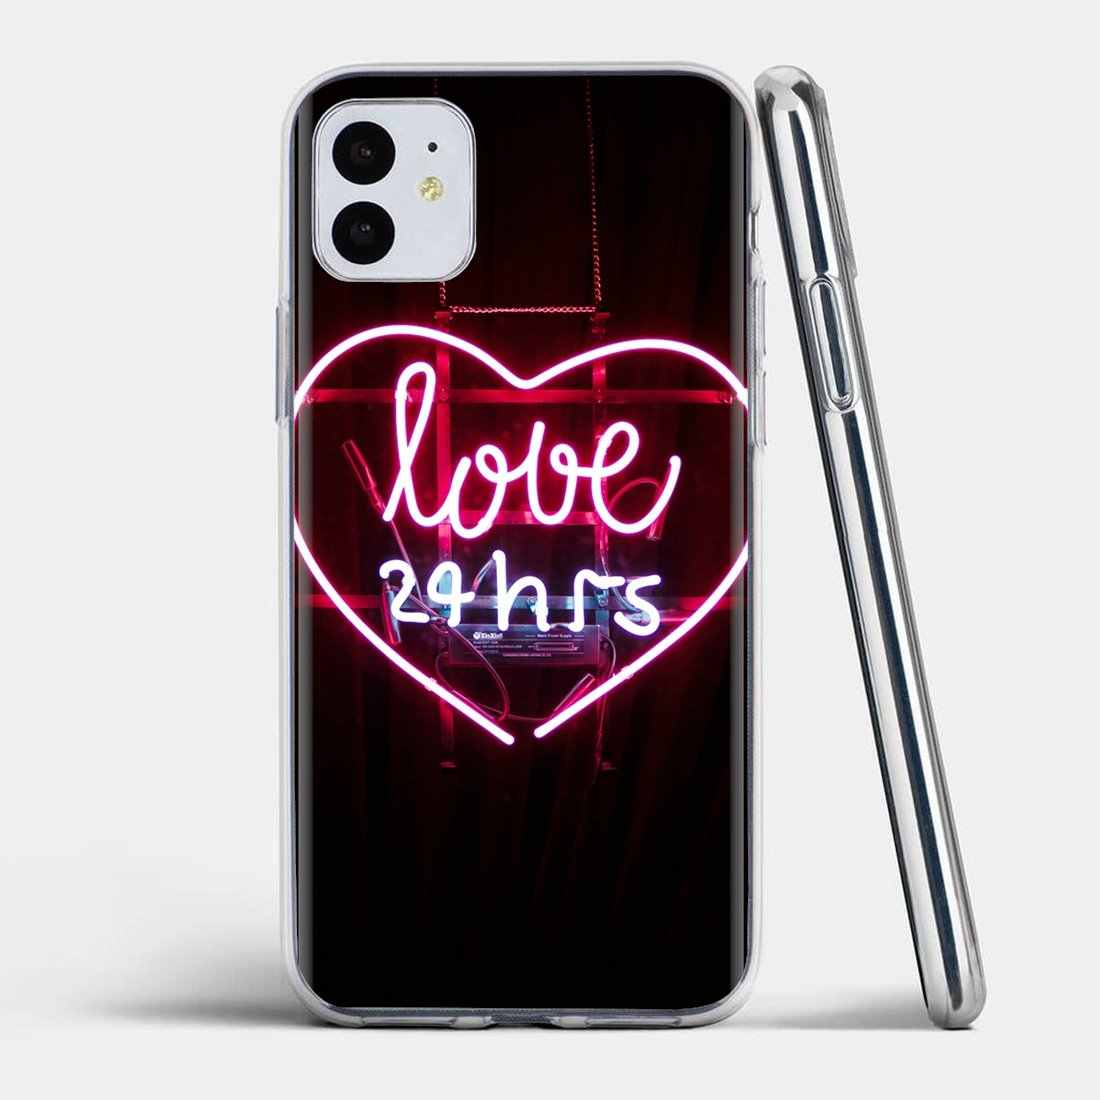 Wallpaper Neon For Iphone 11 Pro 4 4s 5 5s Se 5c 6 6s 7 8 X Xr Xs Plus Max For Ipod Touch Fashionable Silicone Phone Case Fitted Cases Aliexpress